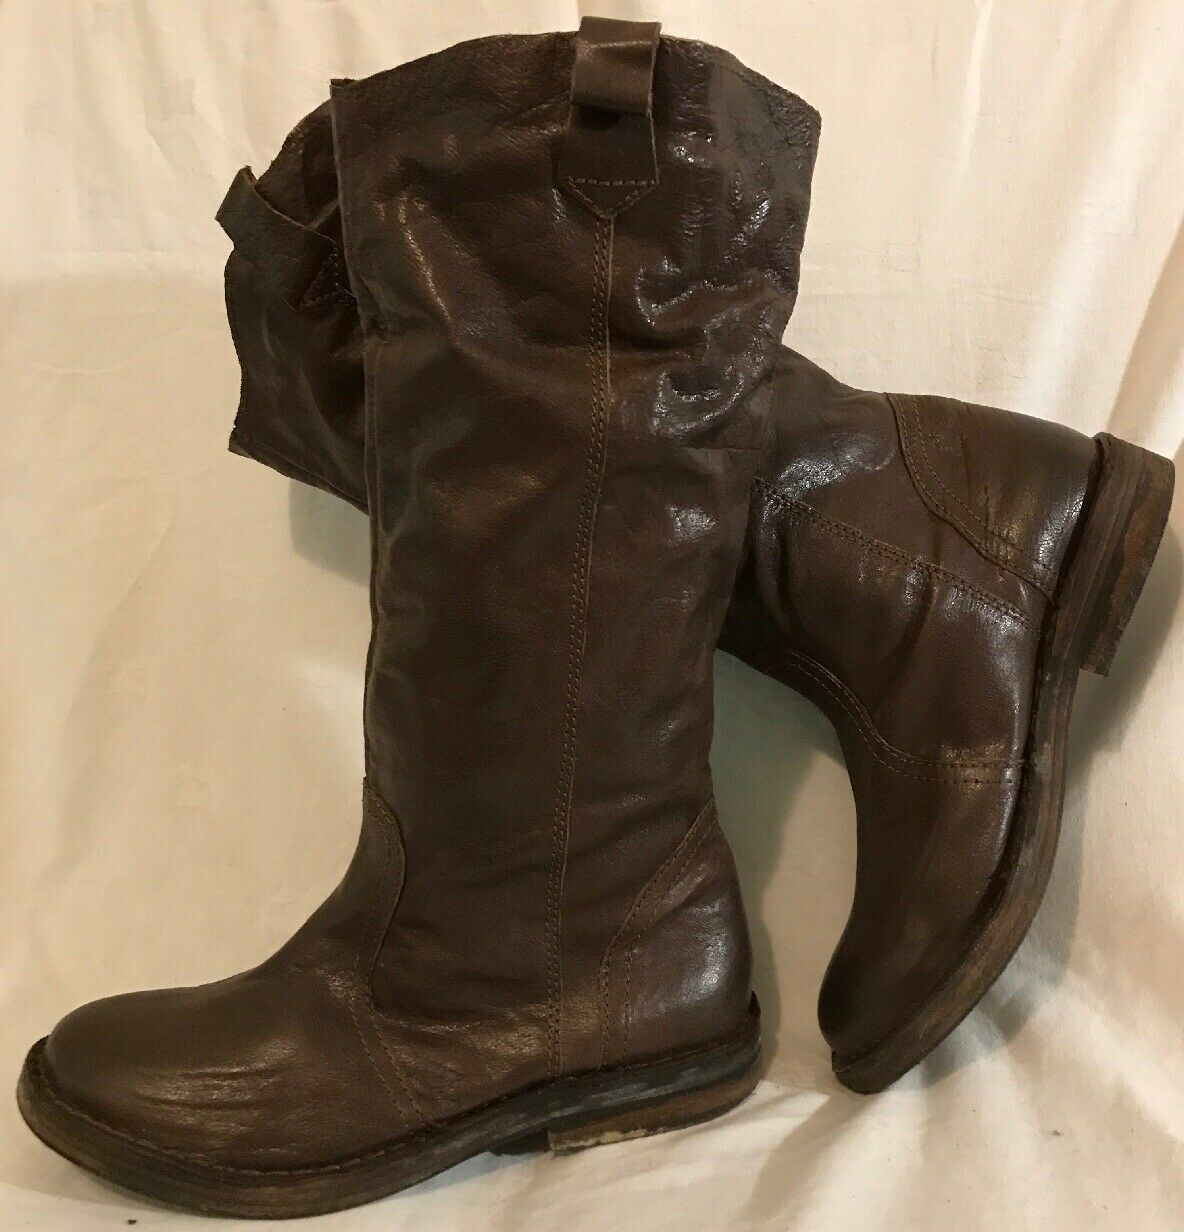 Top Shop Brown Mid Calf Leather Beautiful Boots Size 40 (479v)